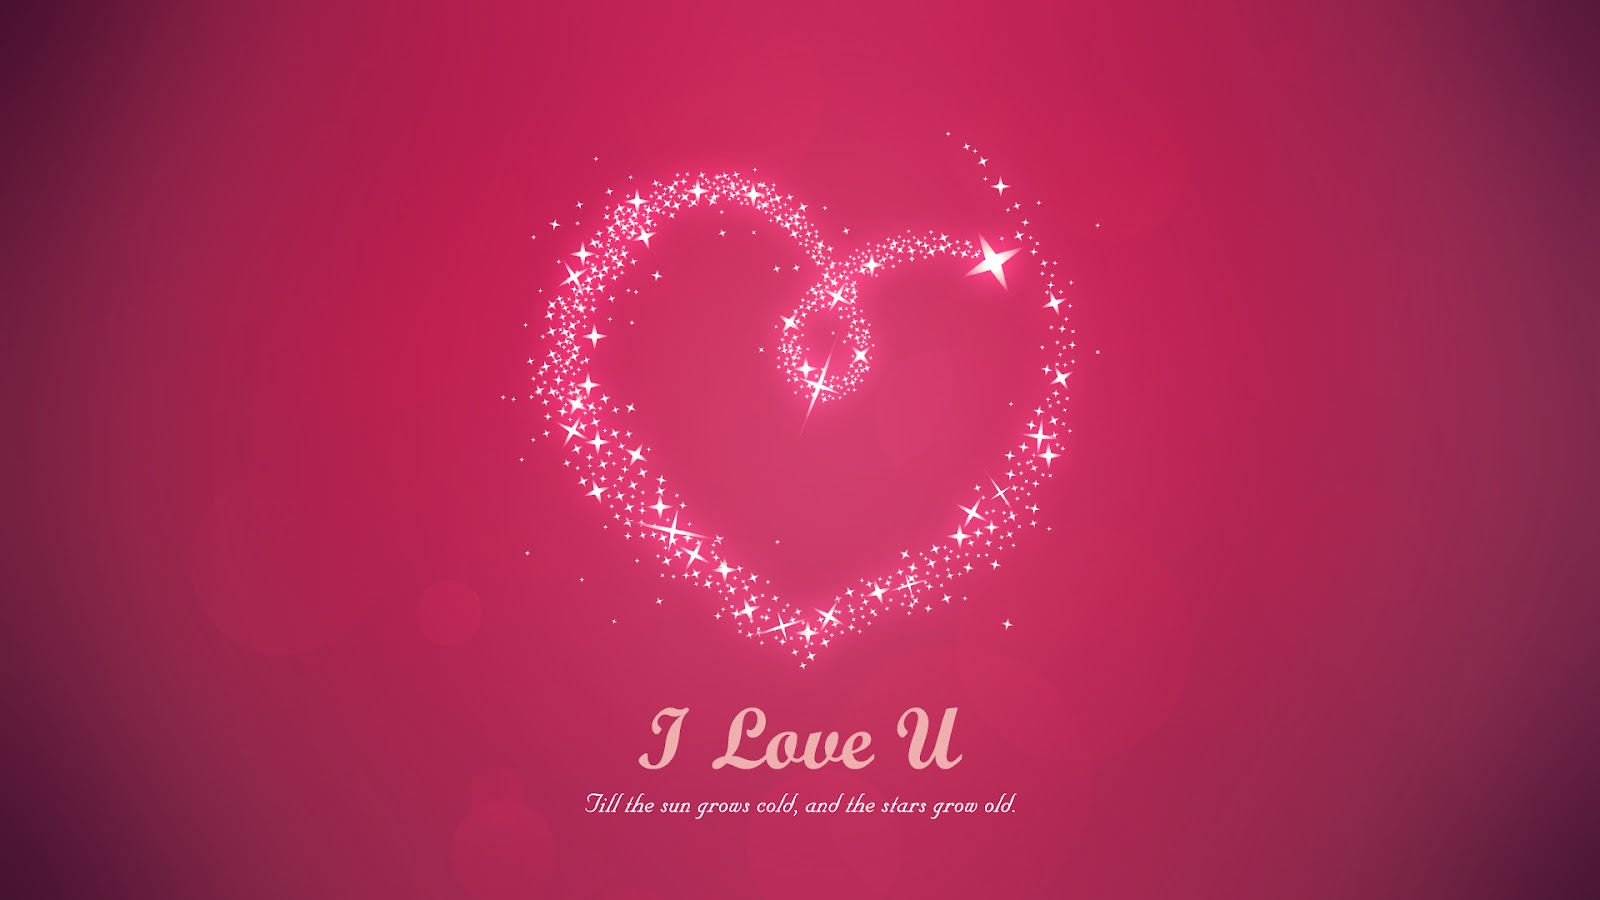 Love Wallpaper With Images : i love u wallpapers love wallpapers love quotes wallpapers sad love wallpapers sad ...